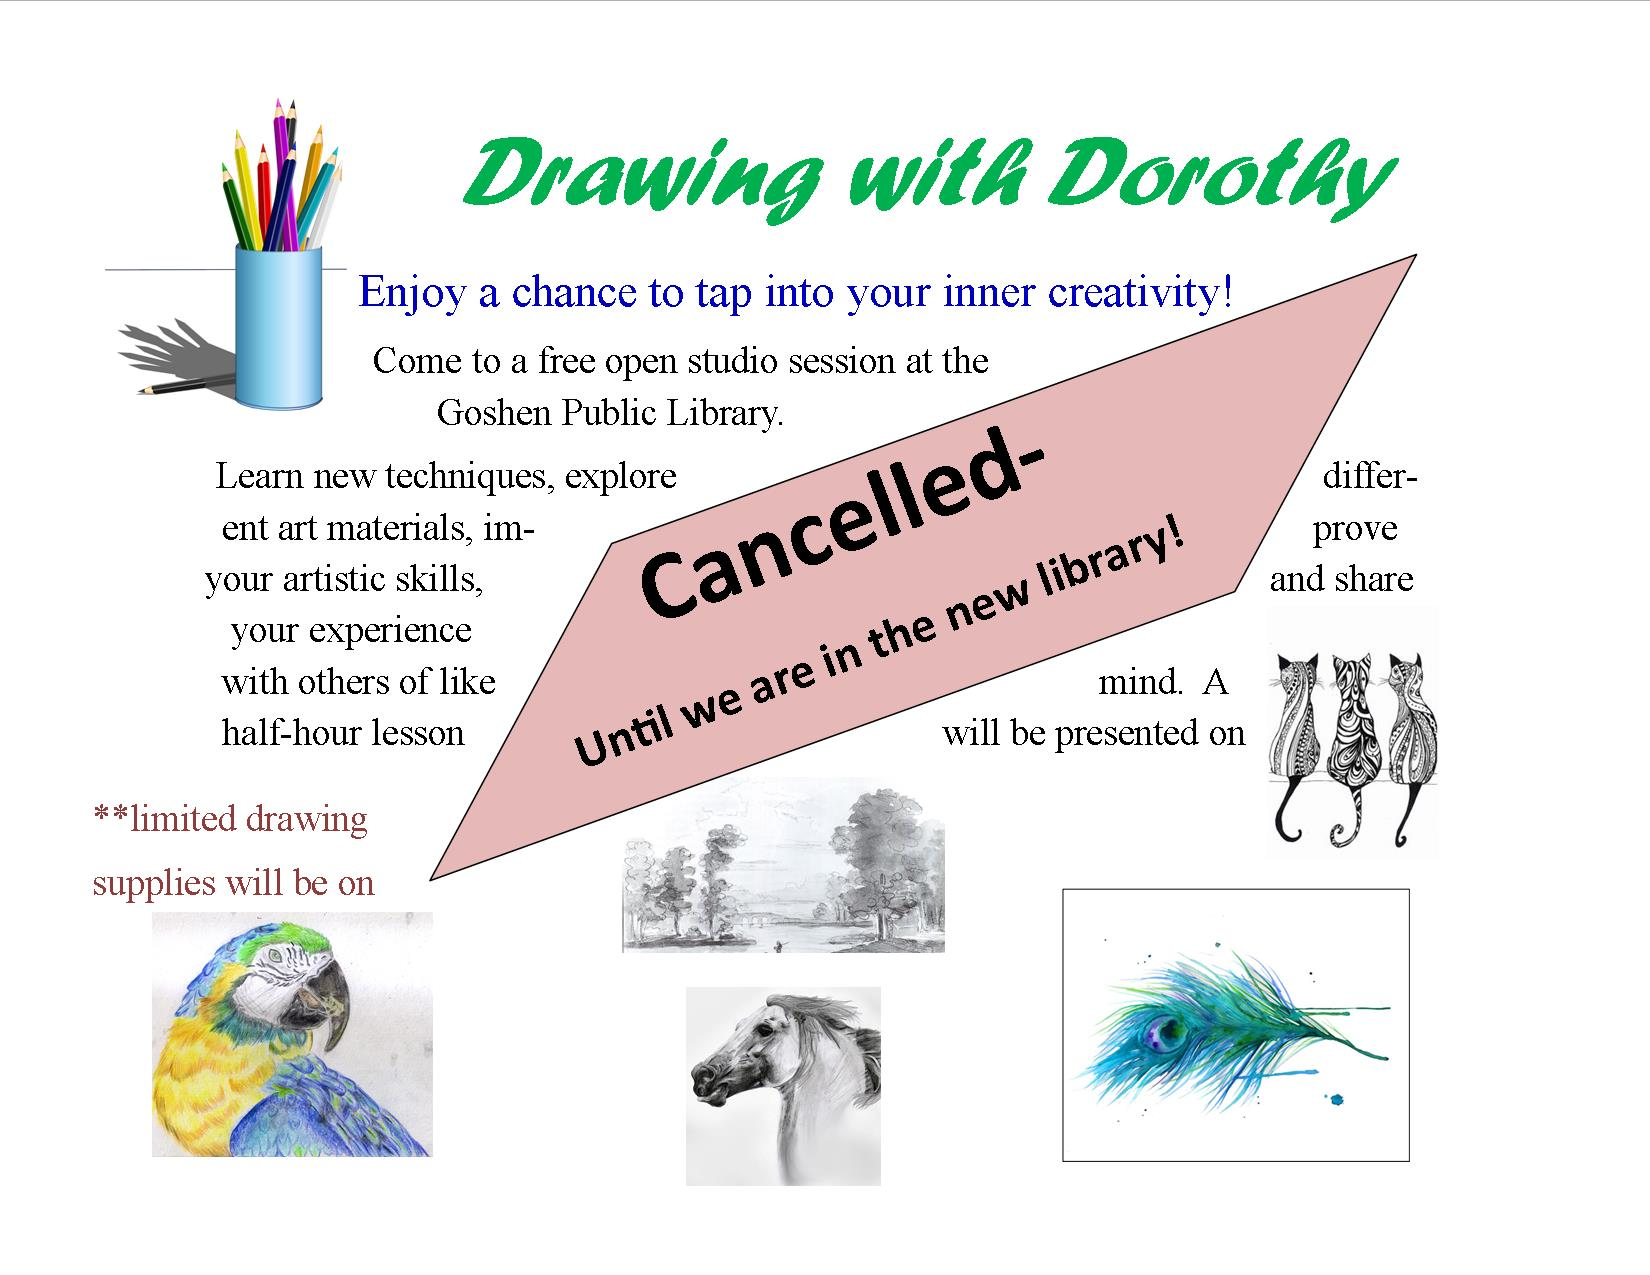 Drawing with Dorothy flyer-cancelled